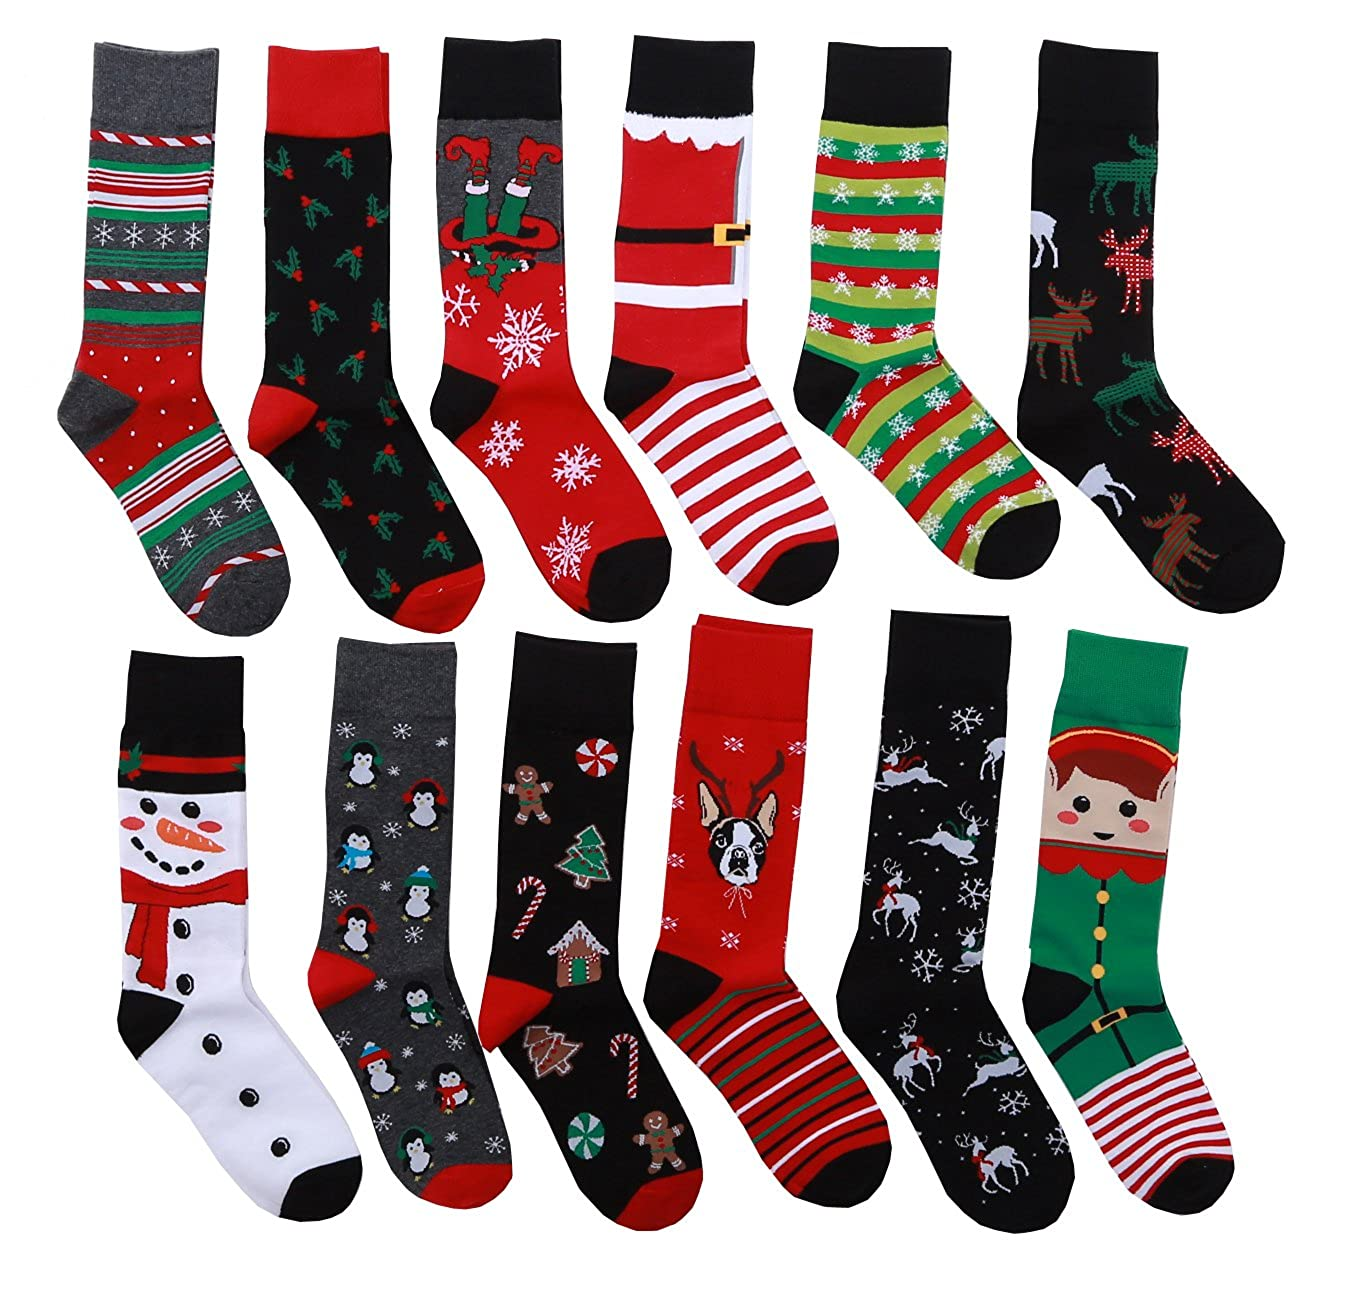 12 Pairs Unisex Premium Cotton Christmas Pattern Dress Socks with Christmas Gift Bag